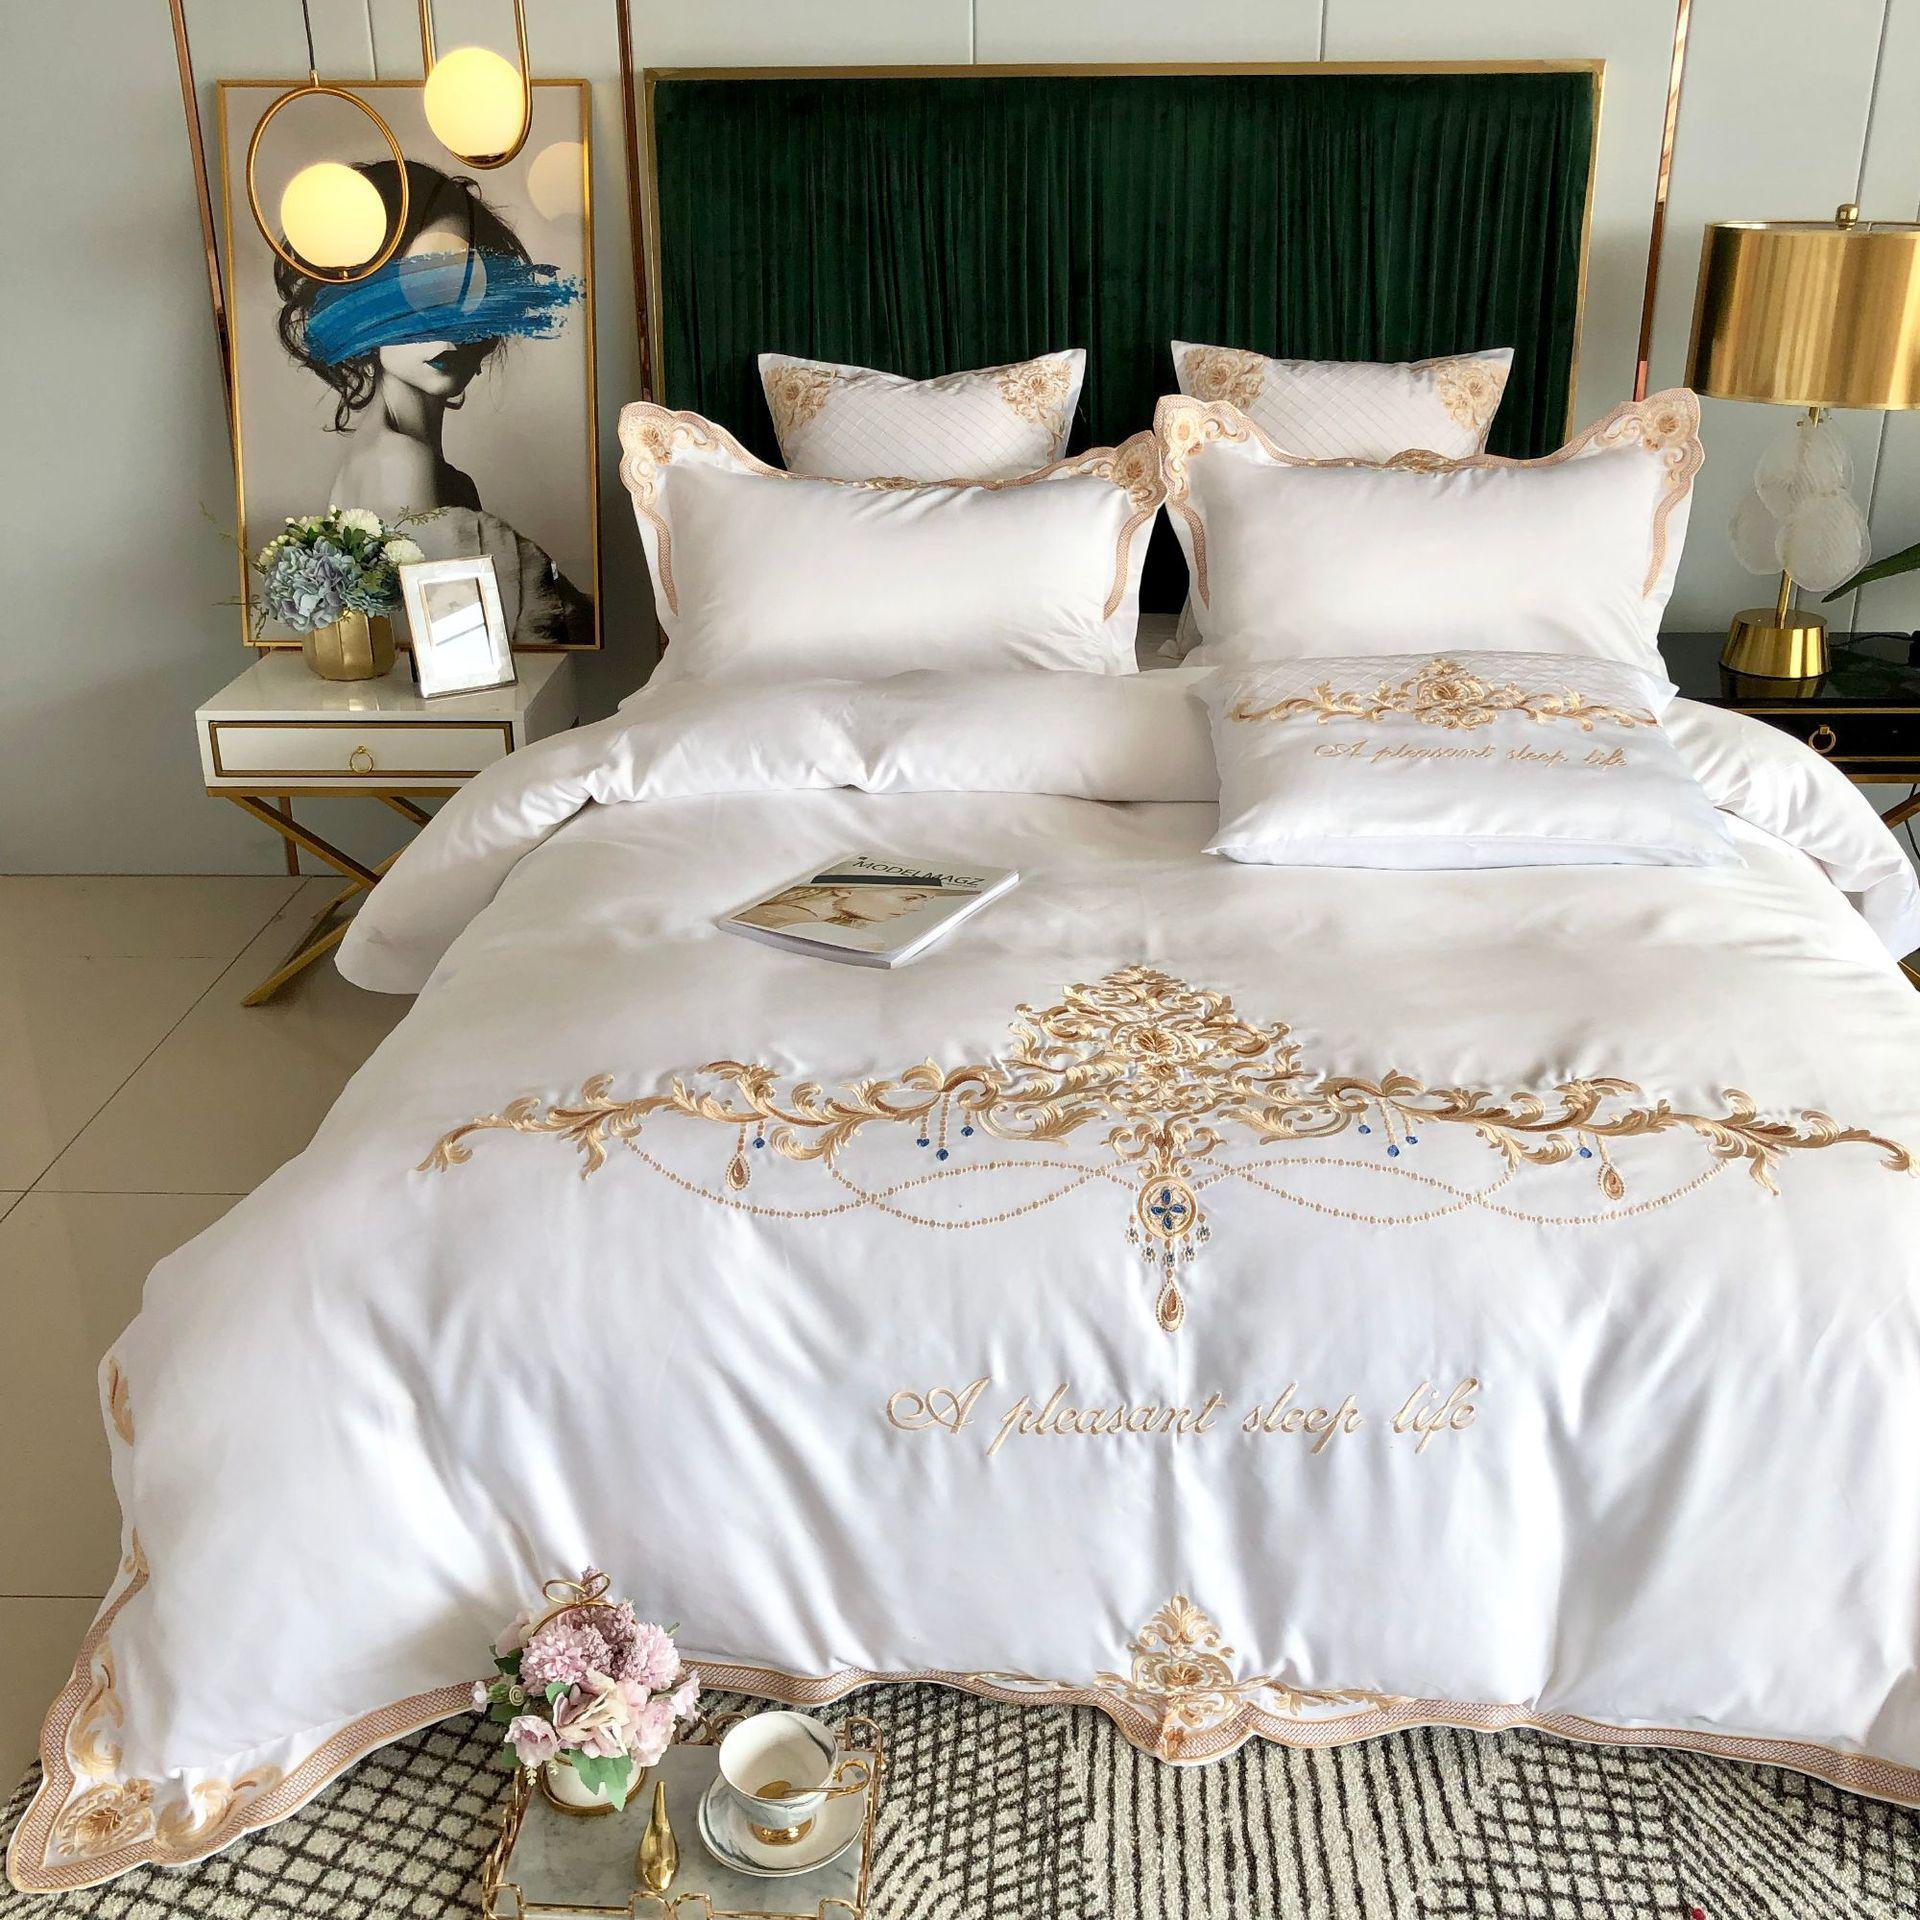 60s Washed Silk with Cotton Bedding Set King and Queen Bedding Set Royal Embroidery Duvet Cover Set 4pcs